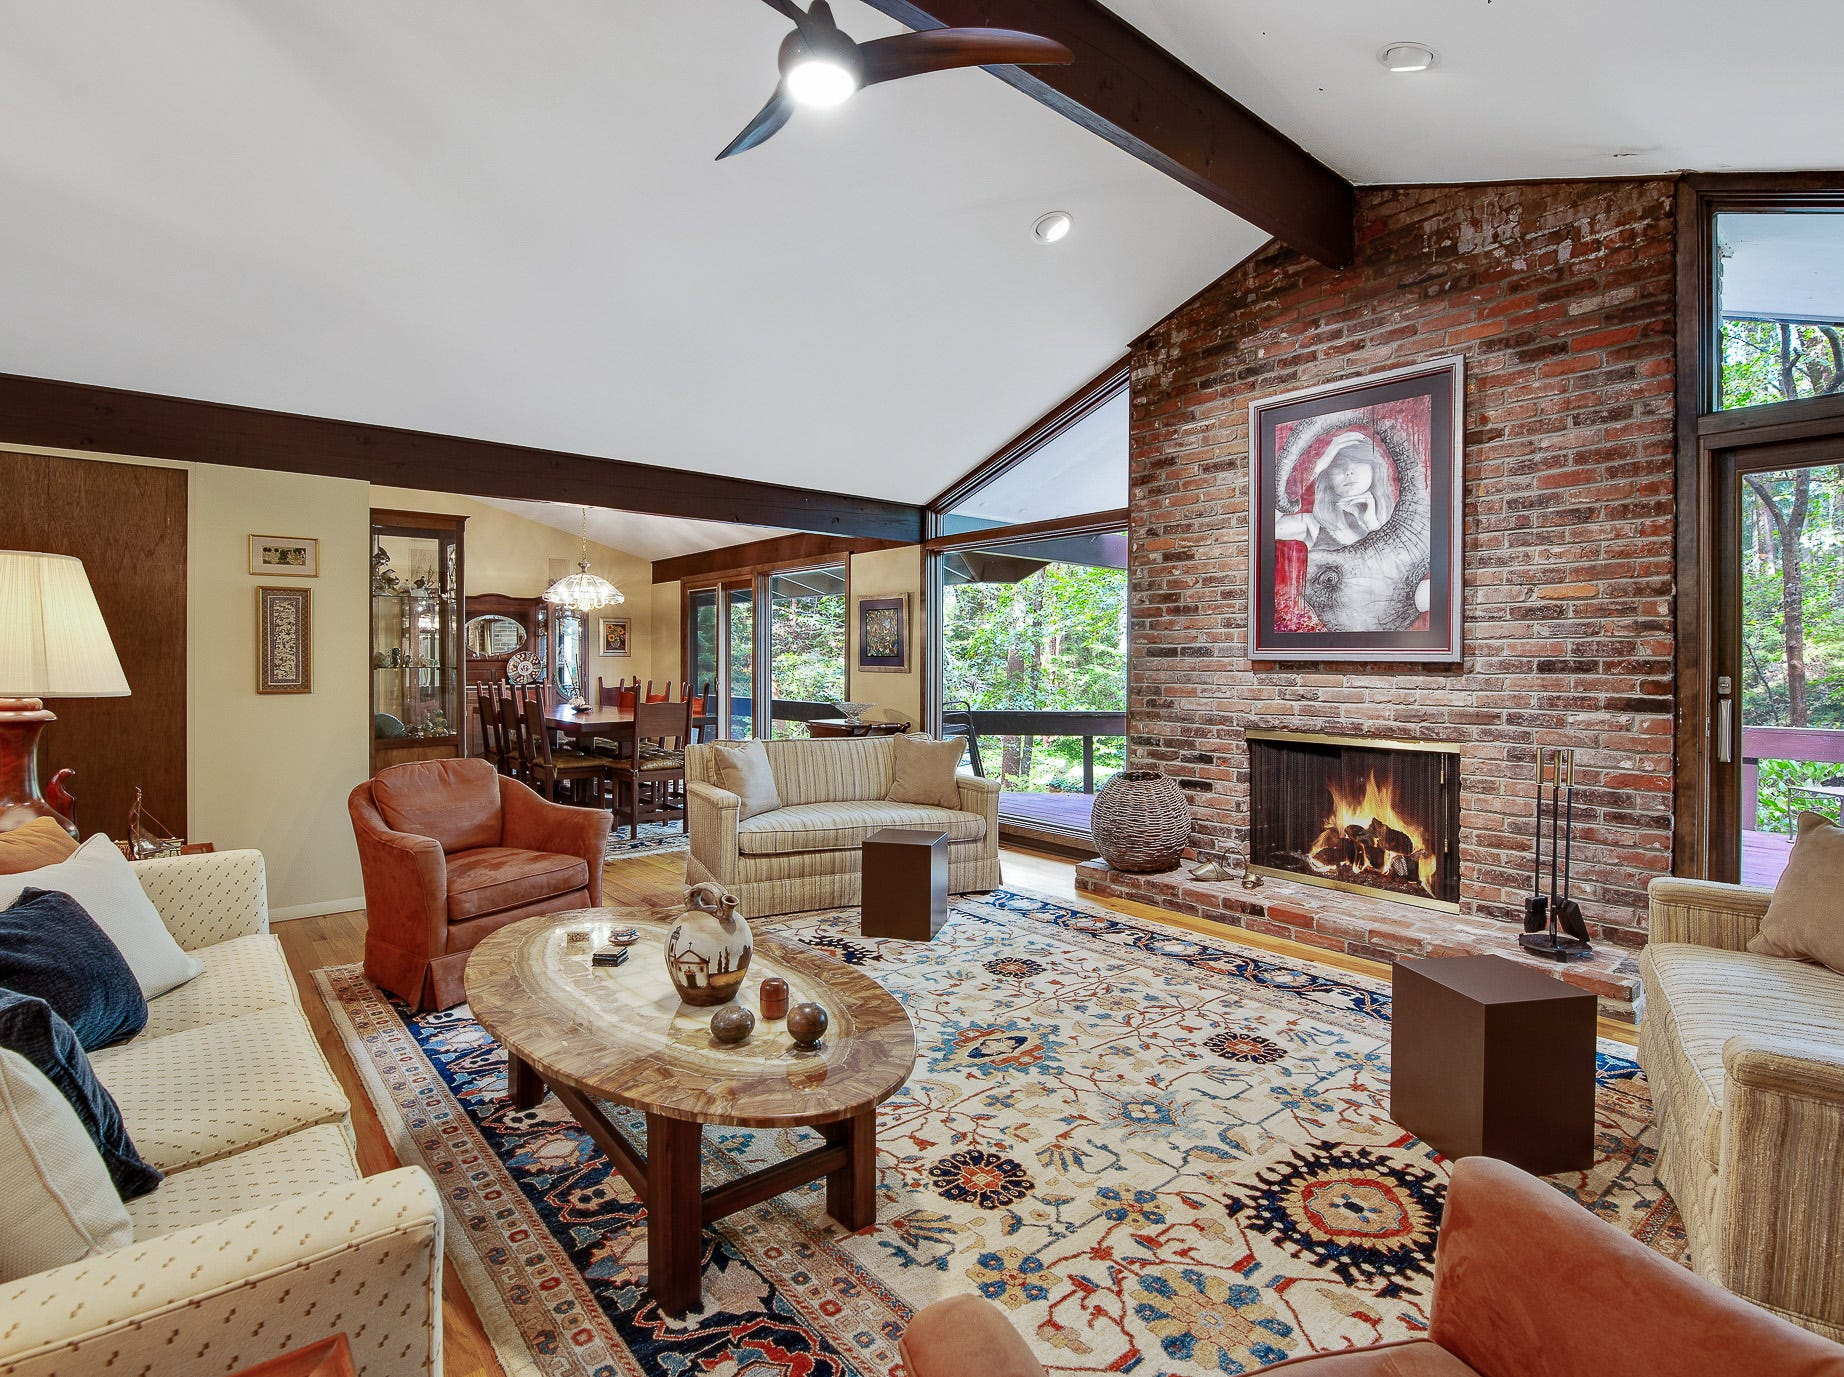 The open living area at 110 Thissell in Greenville has a pitched ceiling and brick fireplace.